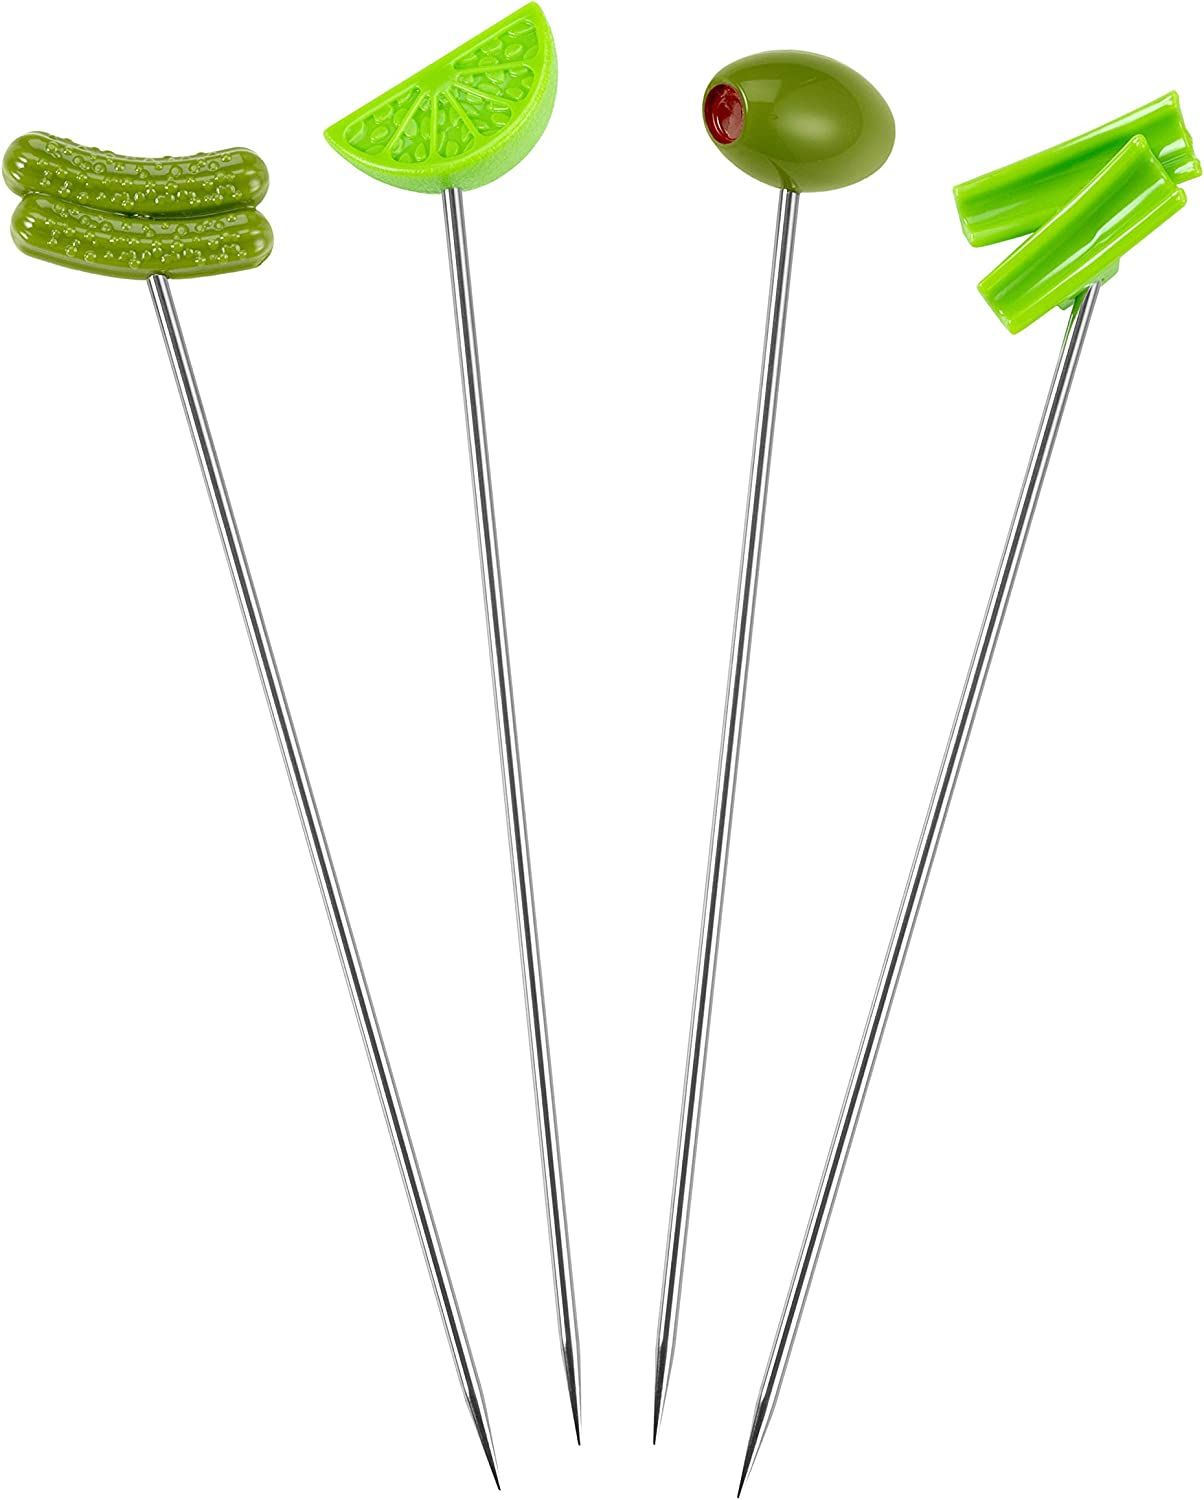 Prodyne Bloody Mary Cocktail Skewer, Set of 4, Green